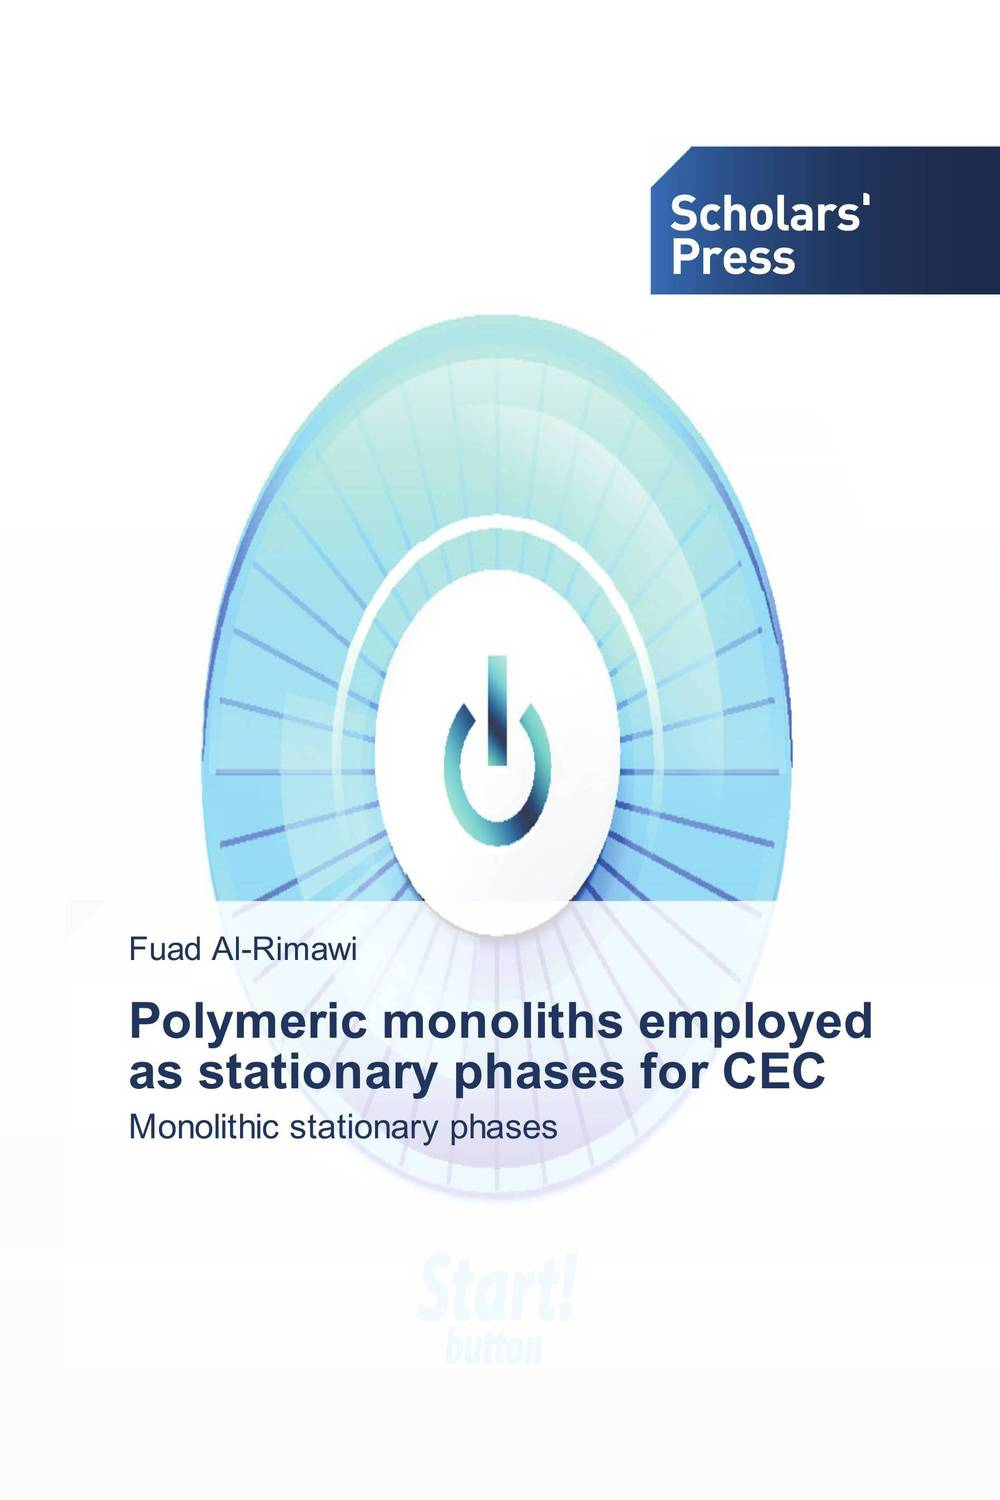 Polymeric monoliths employed as stationary phases for CEC excipients used in the design of lipidic and polymeric microspheres